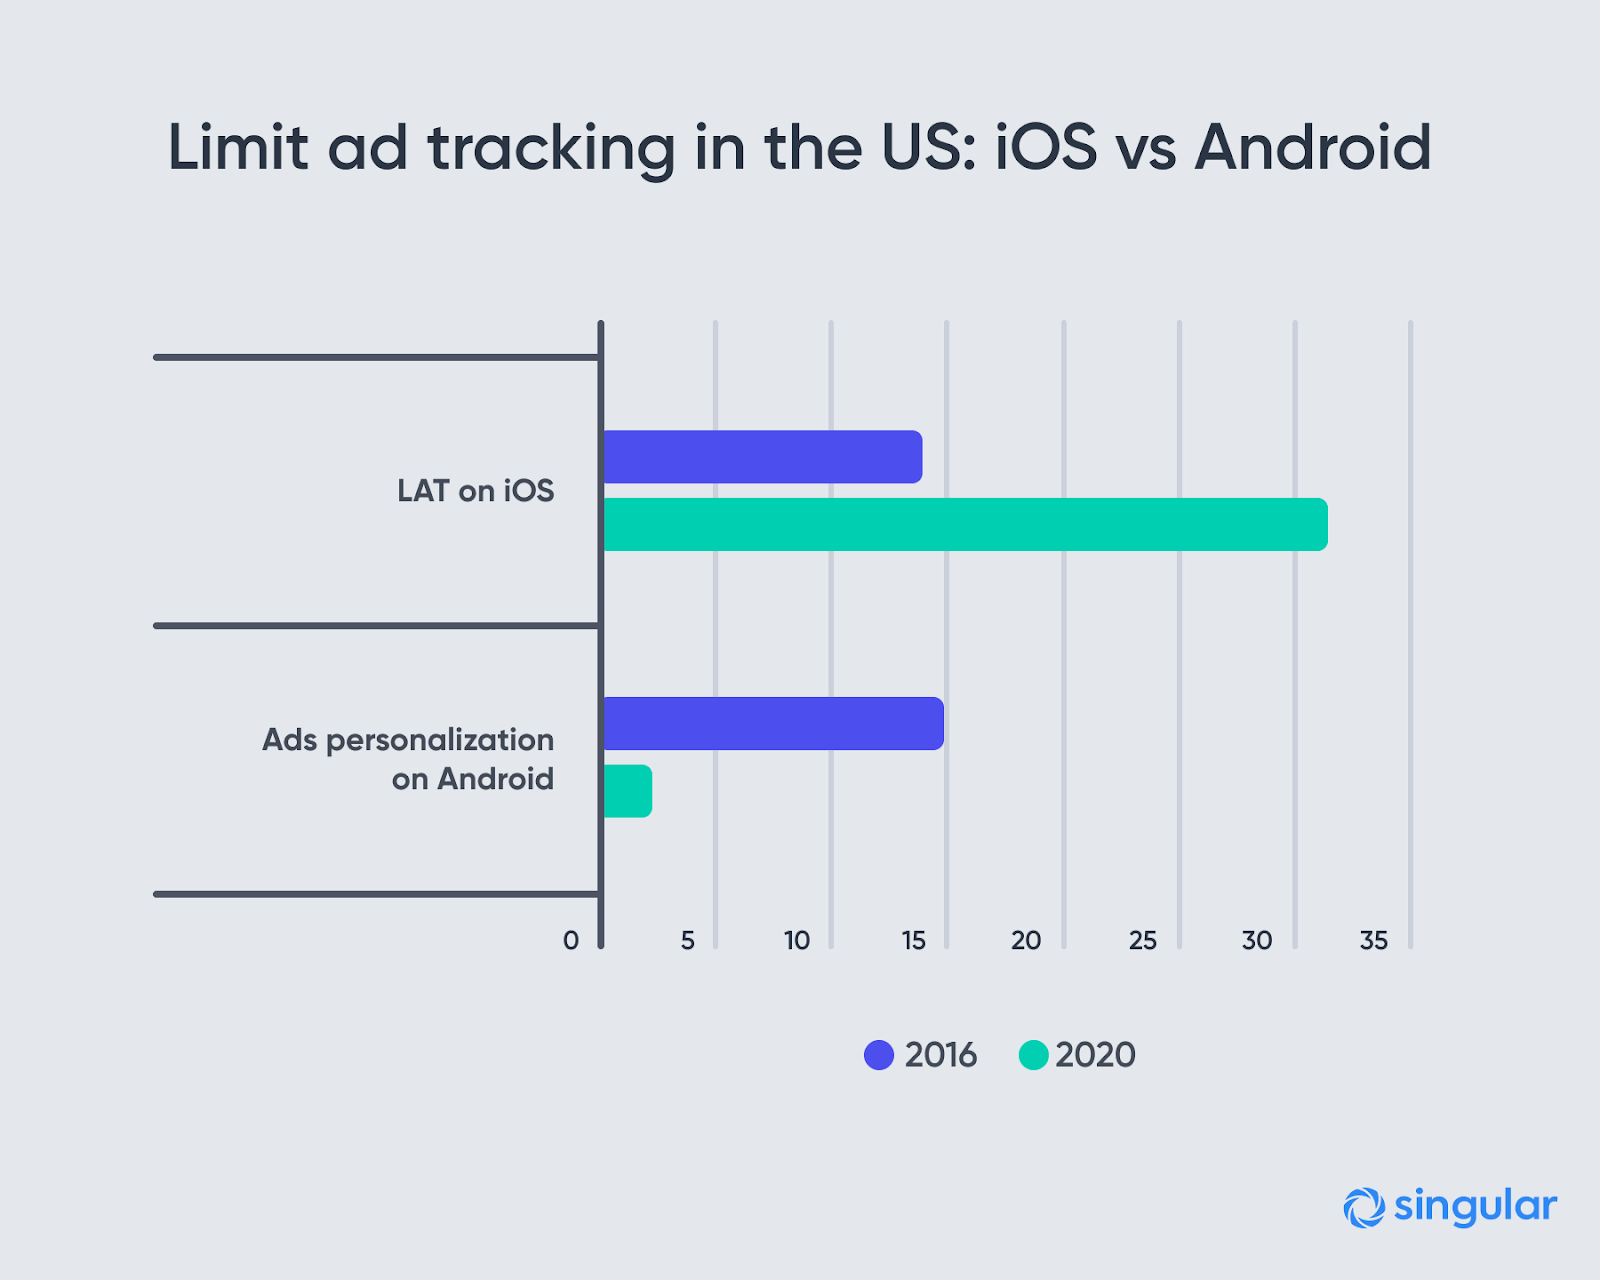 Limit Ad Tracking Android vs. iOS